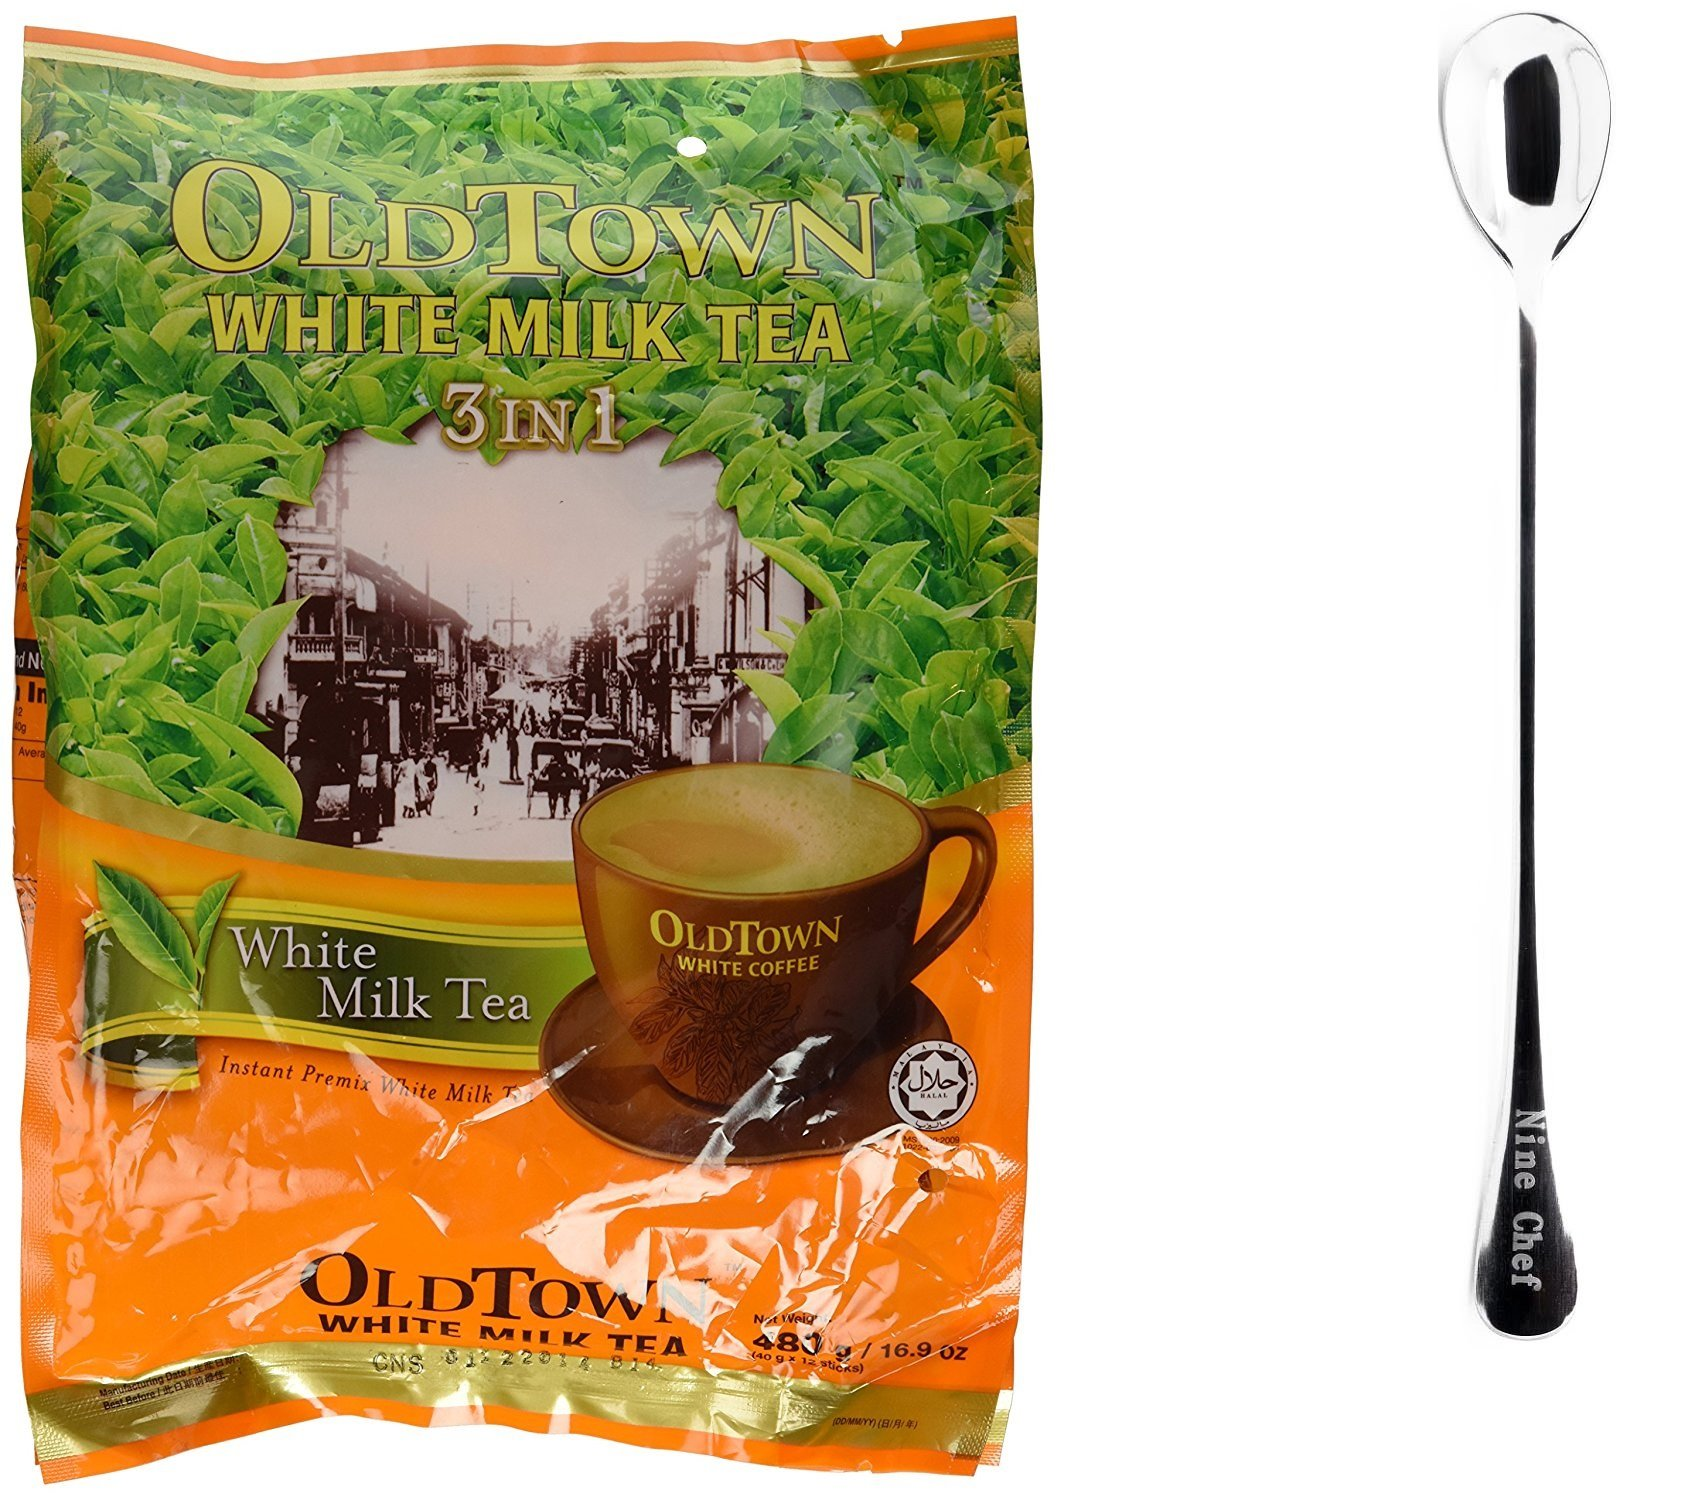 One NineChef Spoon + Old Town White Coffee (3 In 1 White Milk Tea, 6 Bag) by NineChef